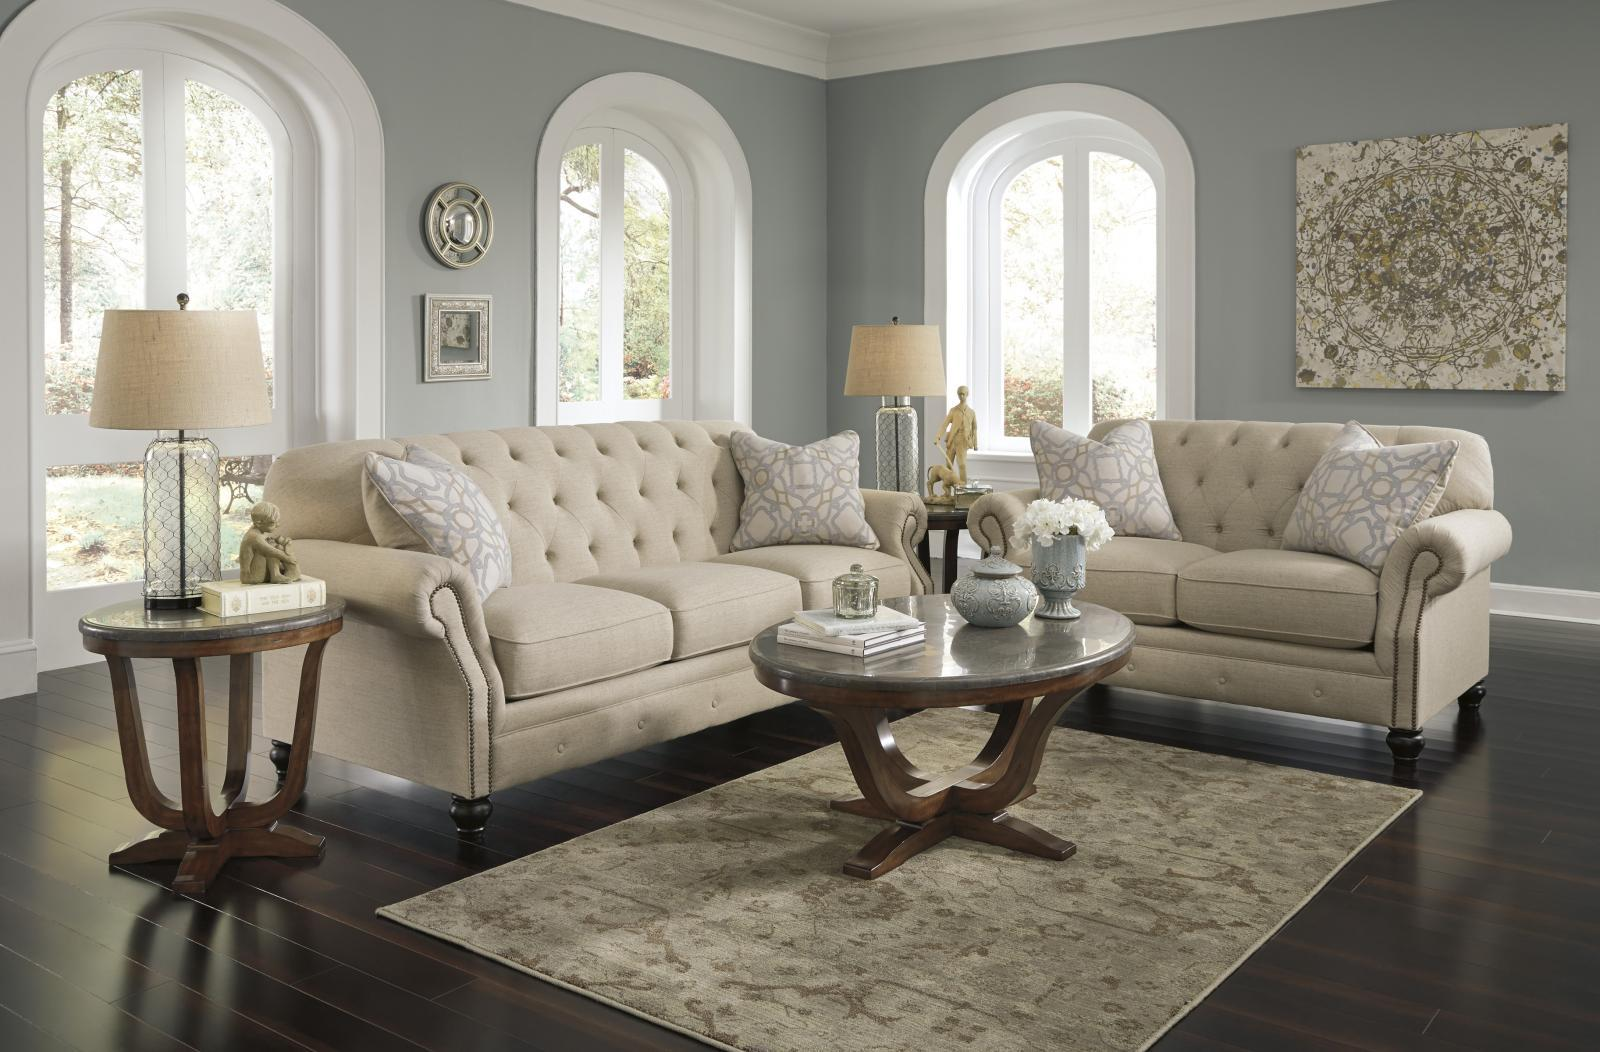 Ashley Kieran Living Room Set 2pcs in Natural Twill Upholstery Traditional Style